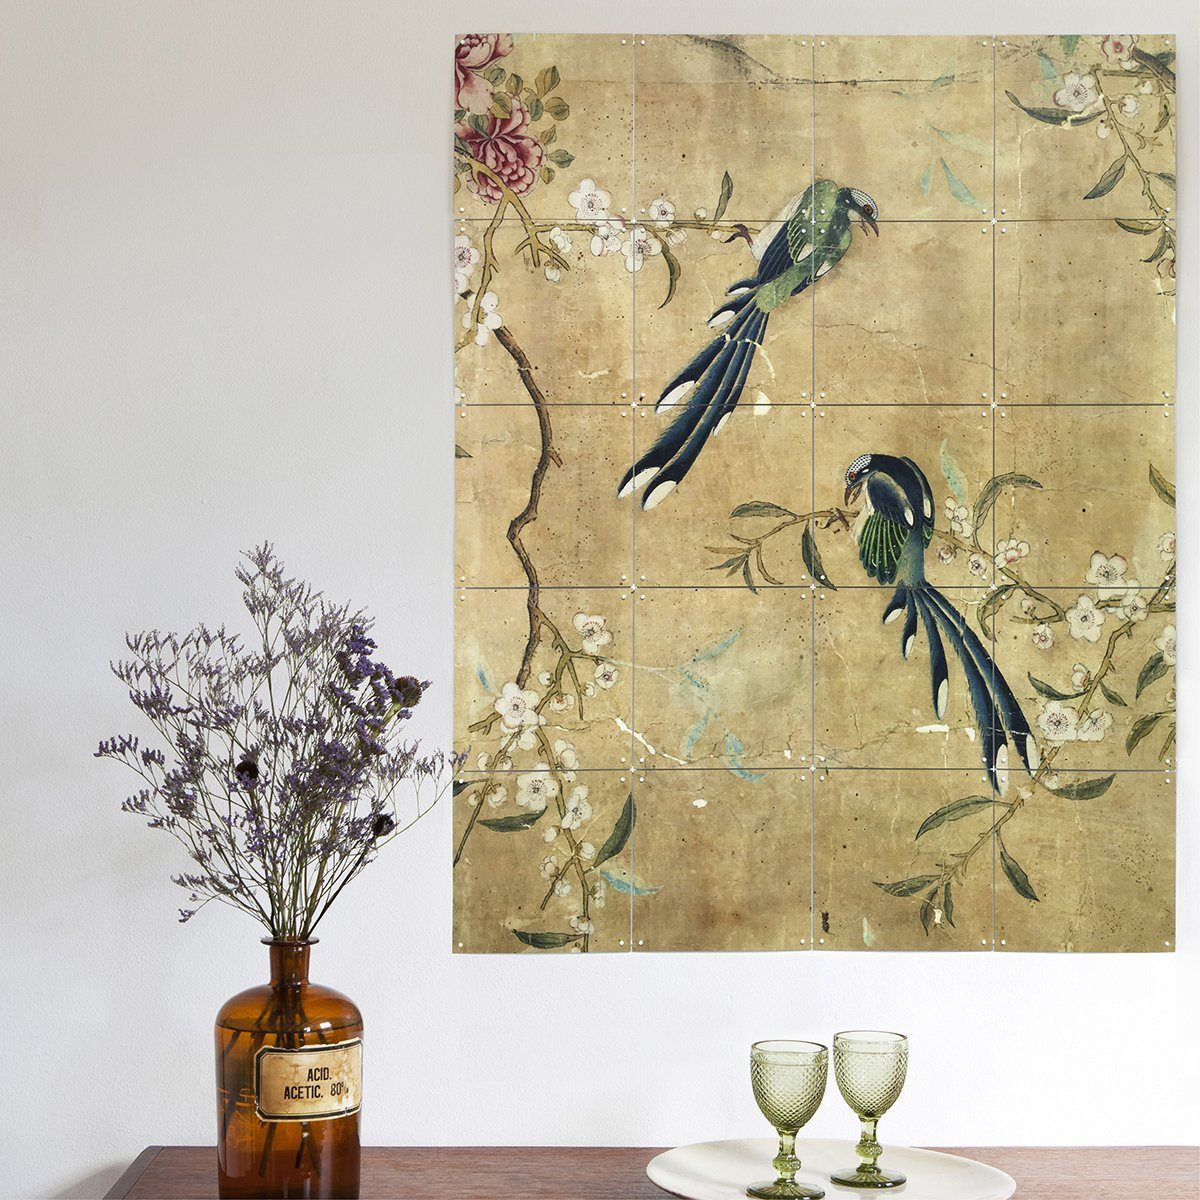 IXXI Chinese Wallpaper No 5 (Gold) Wall Art | 100cm x 140cm | Now On ...